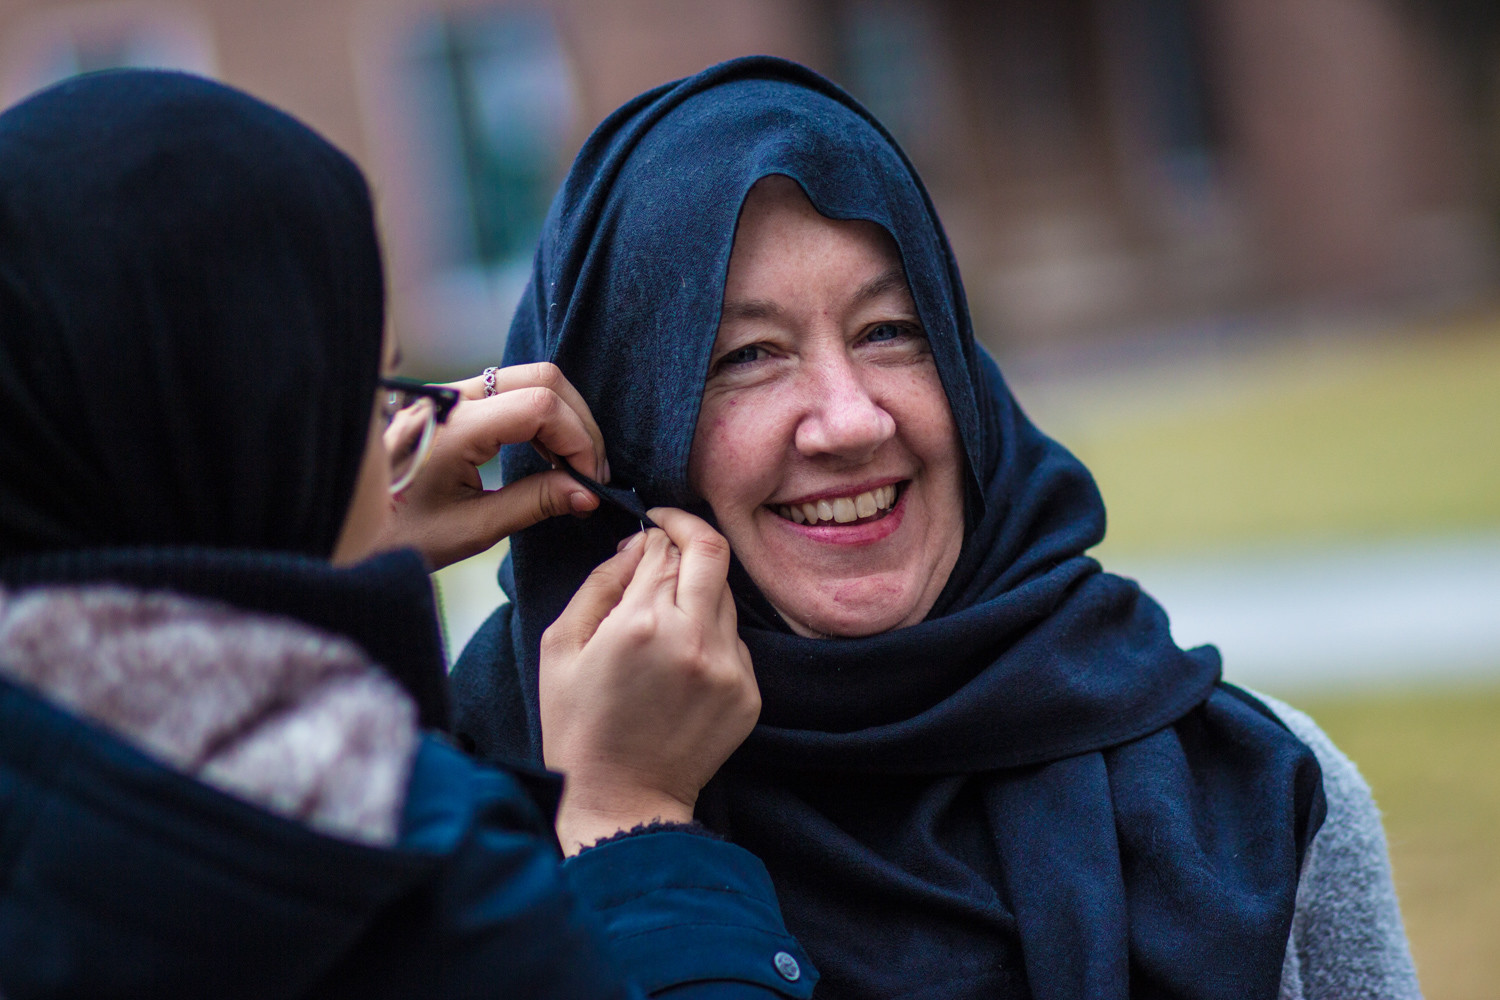 Margaret Groarke, an assistant professor of government at Manhattan College, was one of many non-Muslim women to partake in World Hijab Day on Feb. 1. Manhattan College's Muslim Student Association hosted the event to increase awareness of Muslim students on campus.